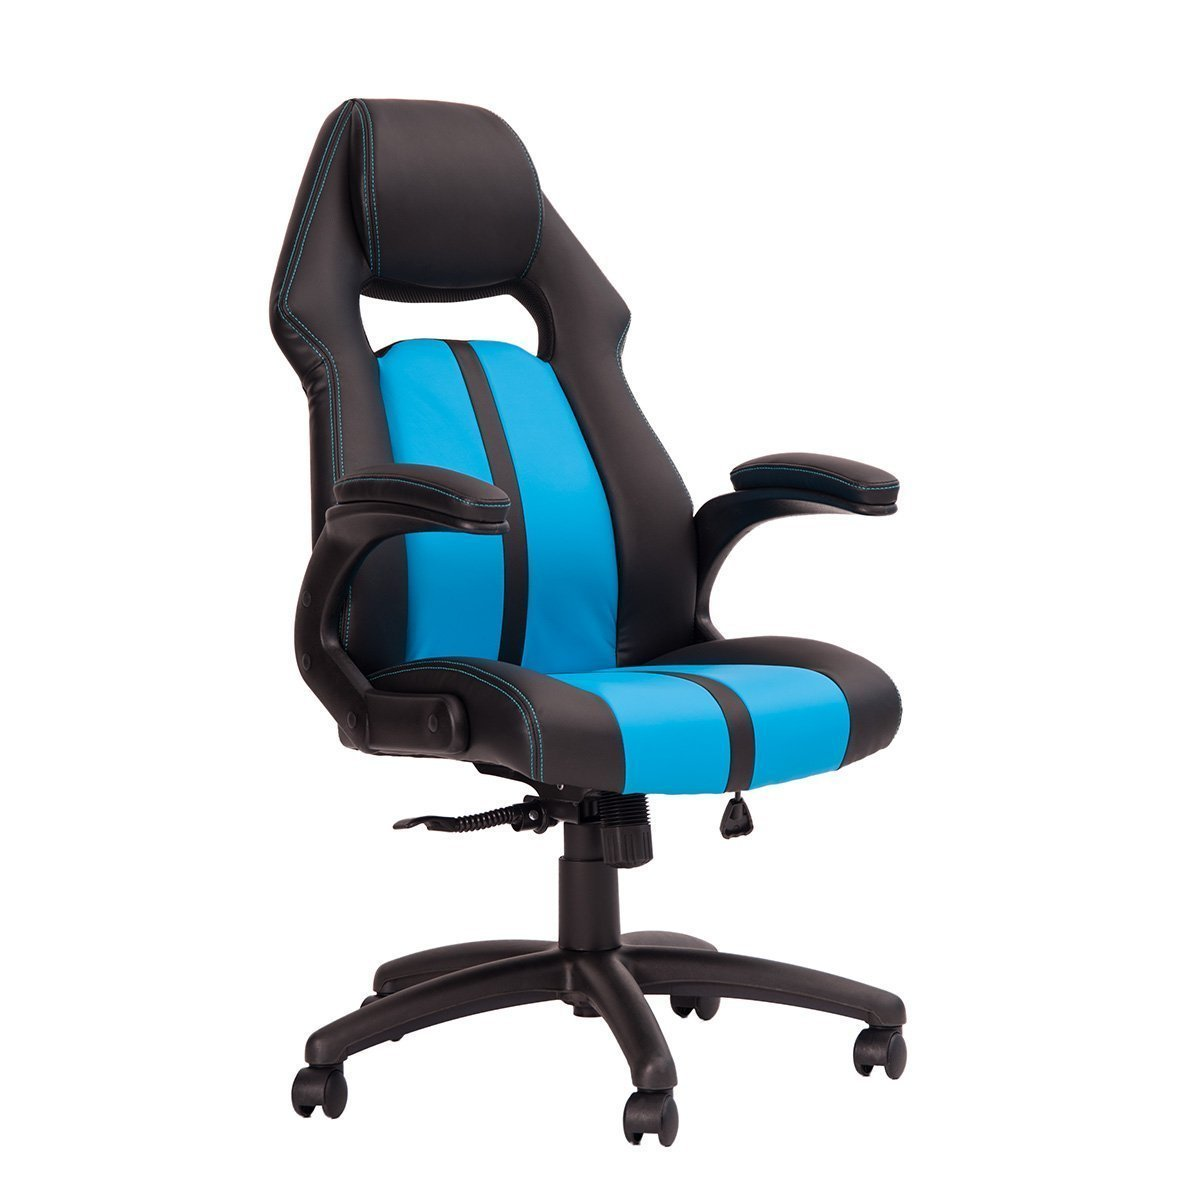 Merax Ergonomic Racing Style Pu Leather Gaming Chair